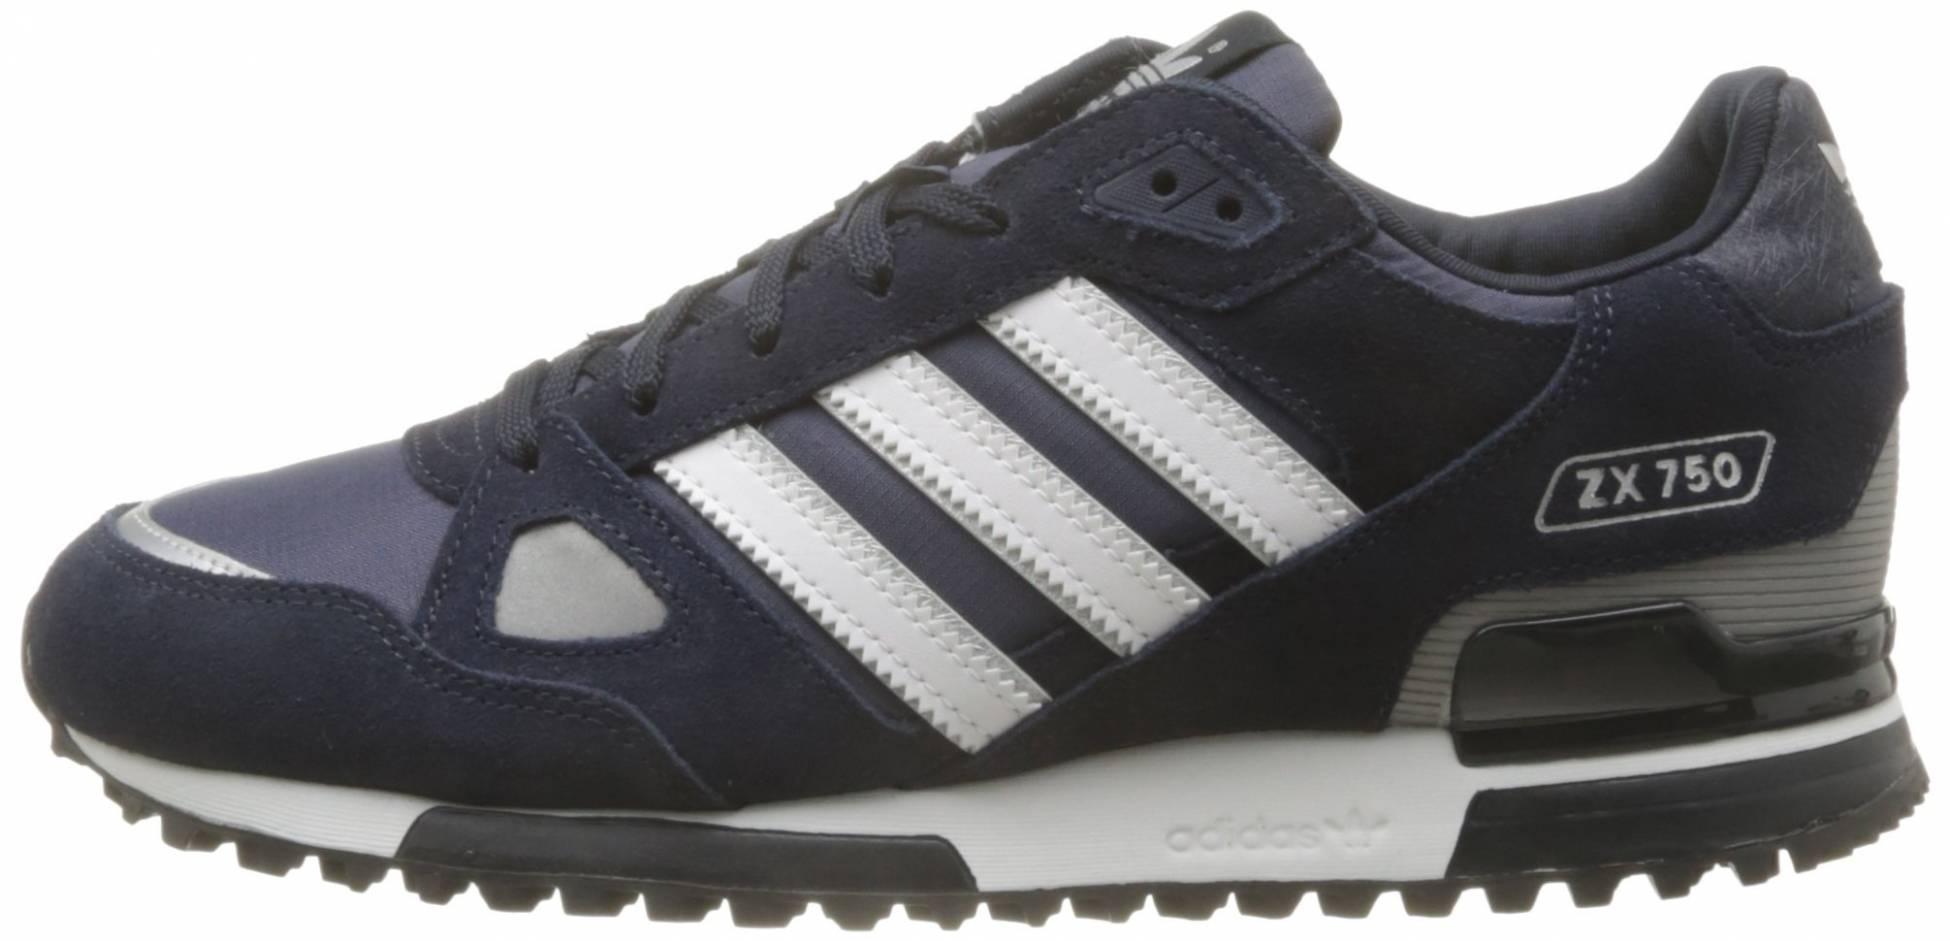 Adidas ZX 750 sneakers (only $70) | RunRepeat